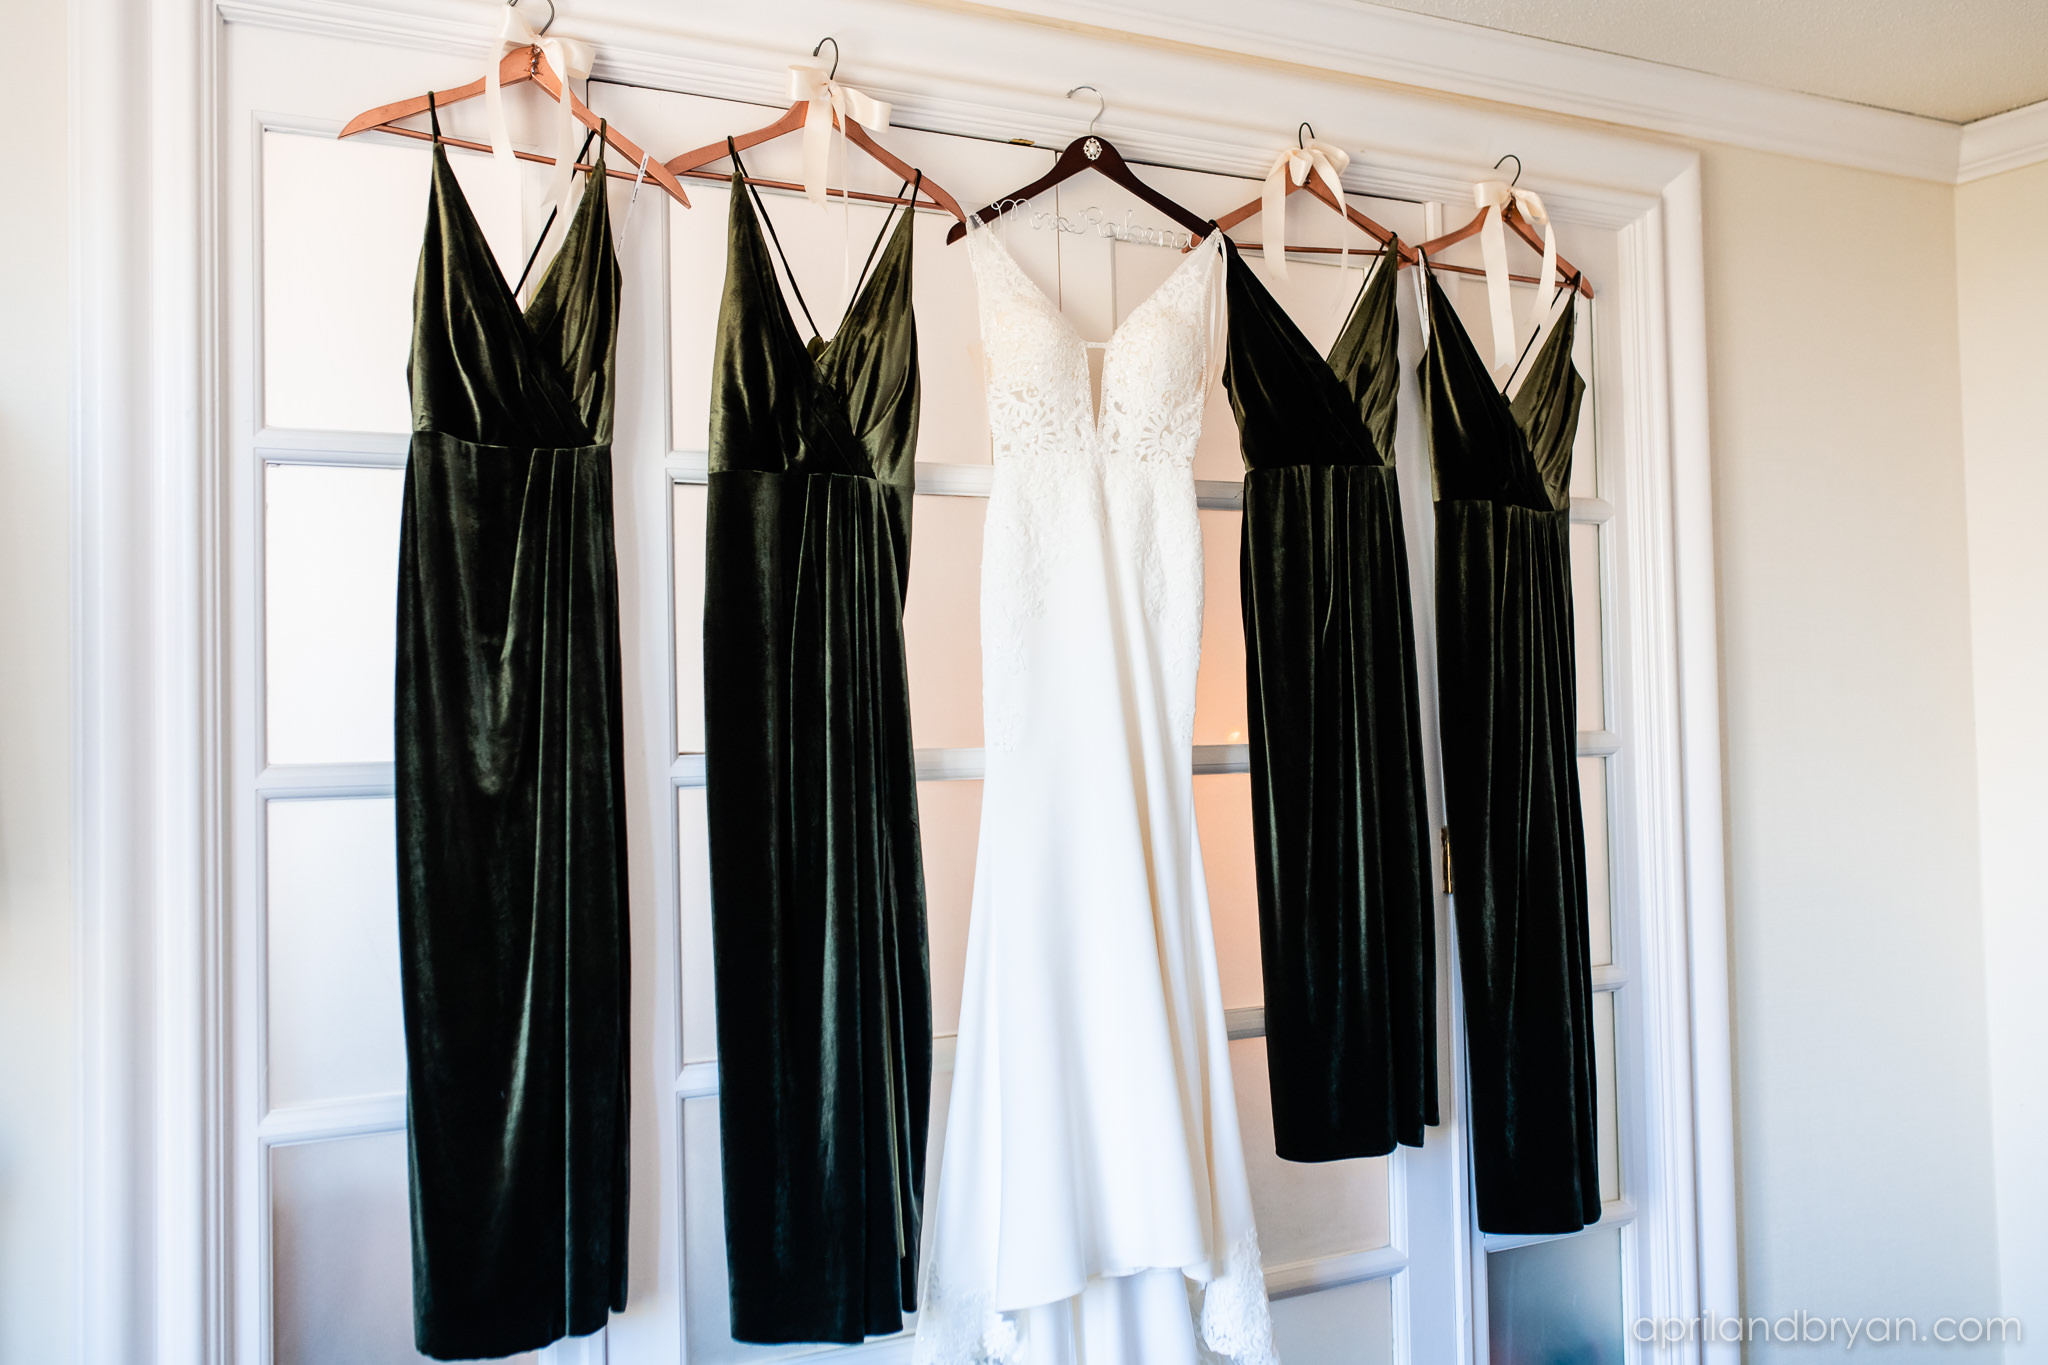 Wedding gown and bridesmaids dresses are hung in the bridal suite of the Franklin Institute in Philadelphia, PA. Shot by April & Bryan Photography. Featured on Dream Weddings.